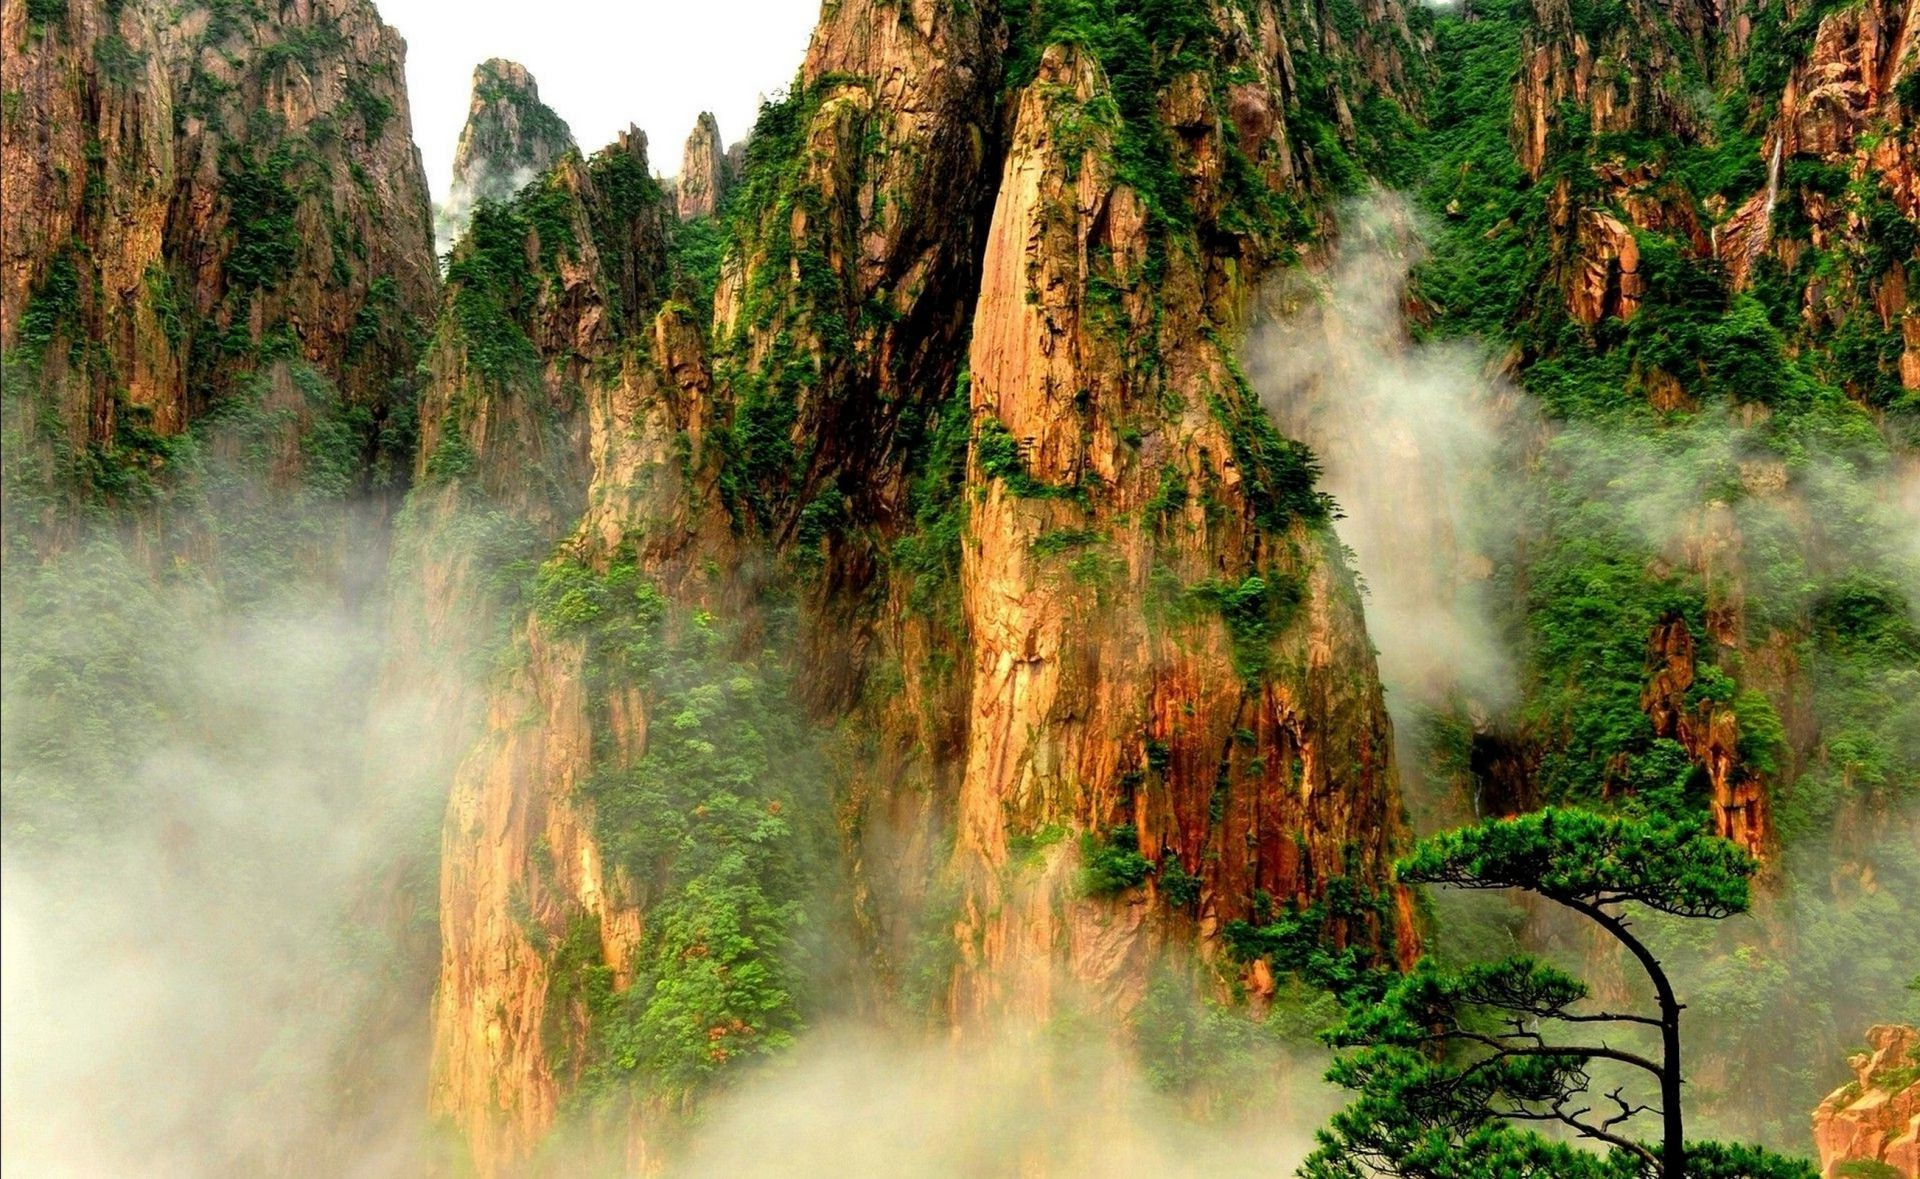 parks nature outdoors wood landscape tree mist travel park fog fall water scenic mountain environment leaf summer